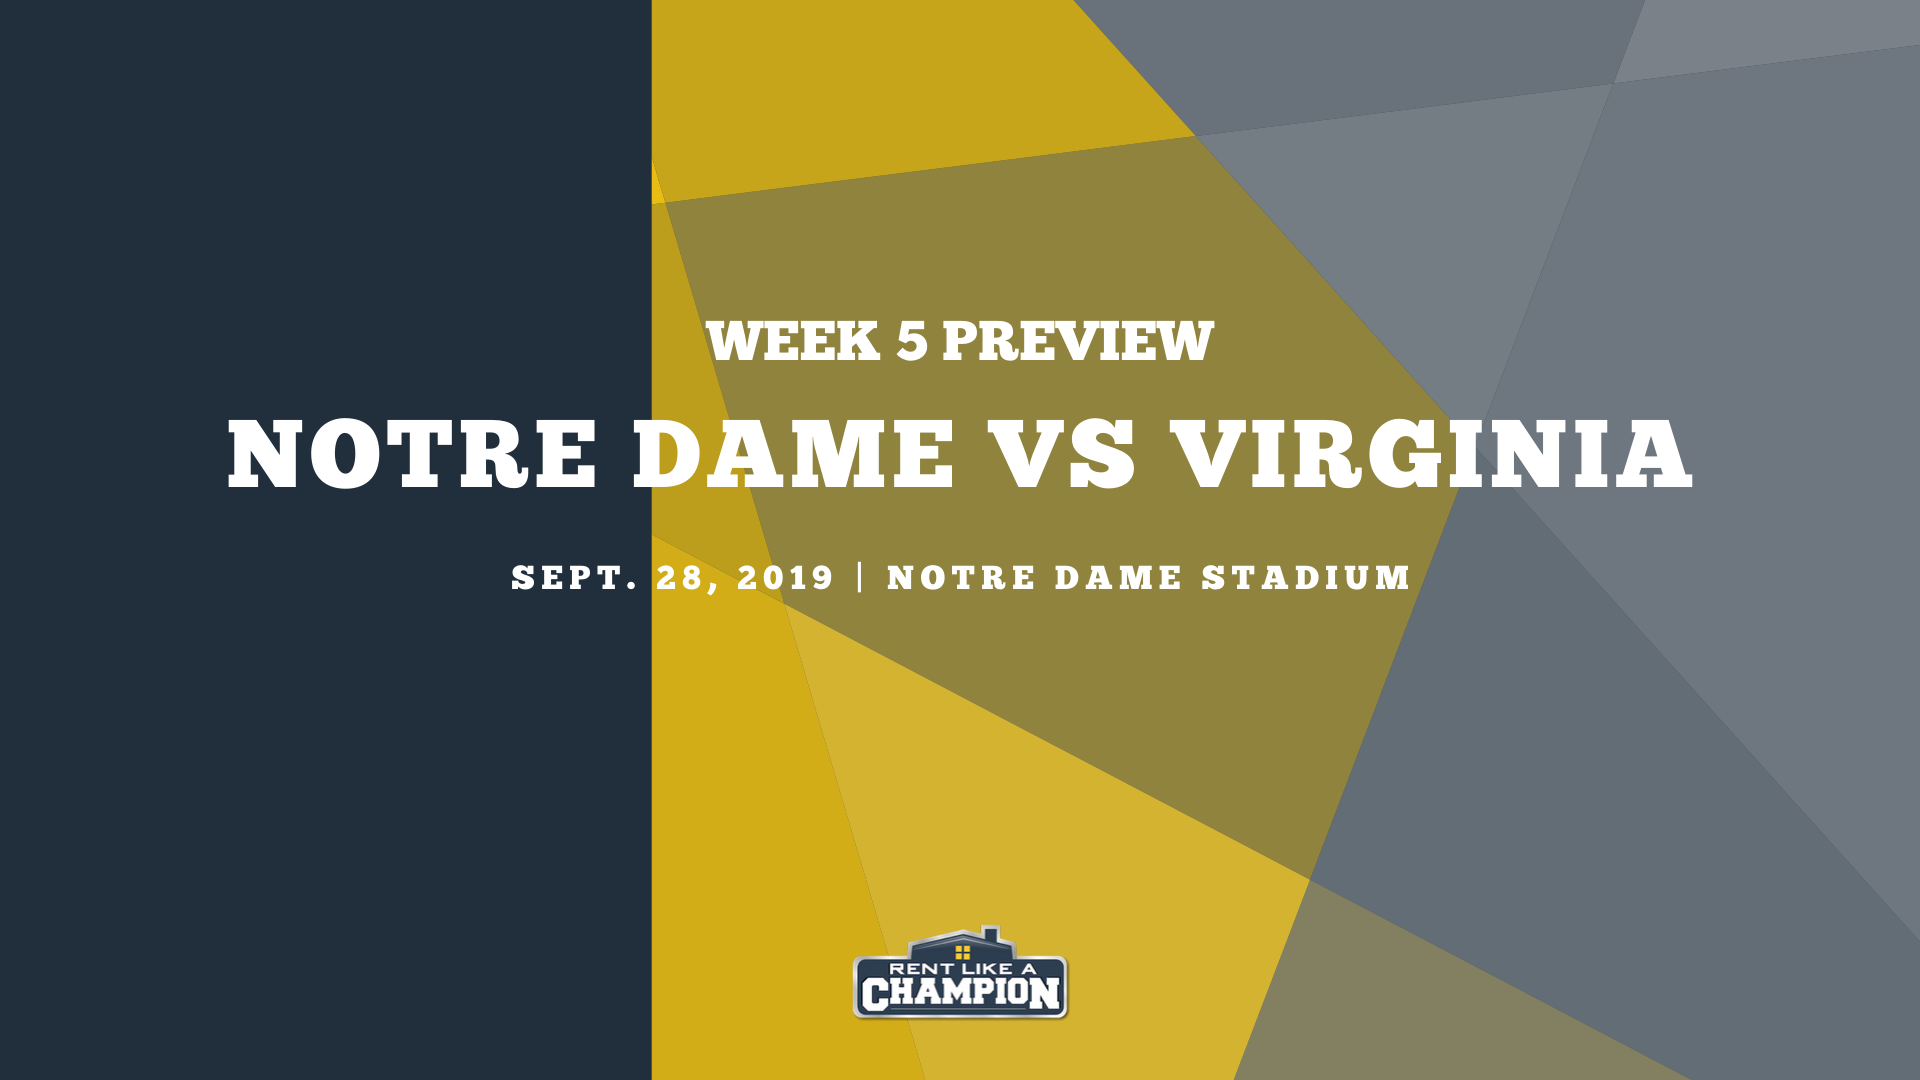 Notre Dame Game Preview Template (2)